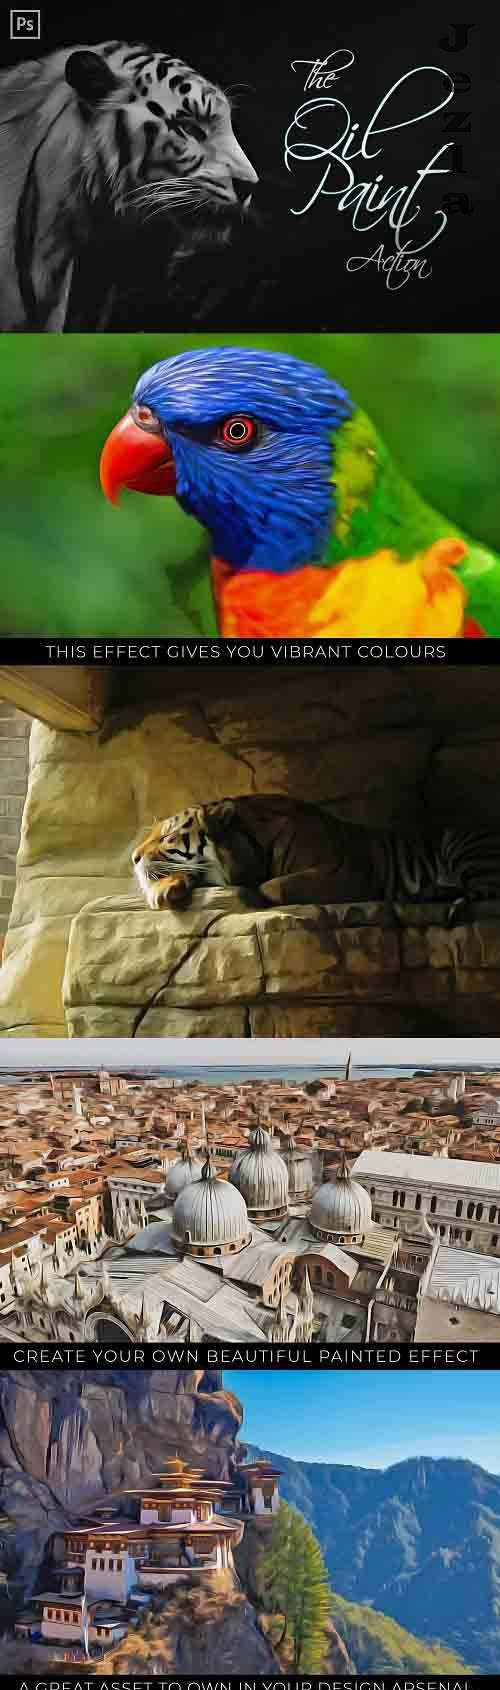 The Oil Painting Photoshop Action - 6121559